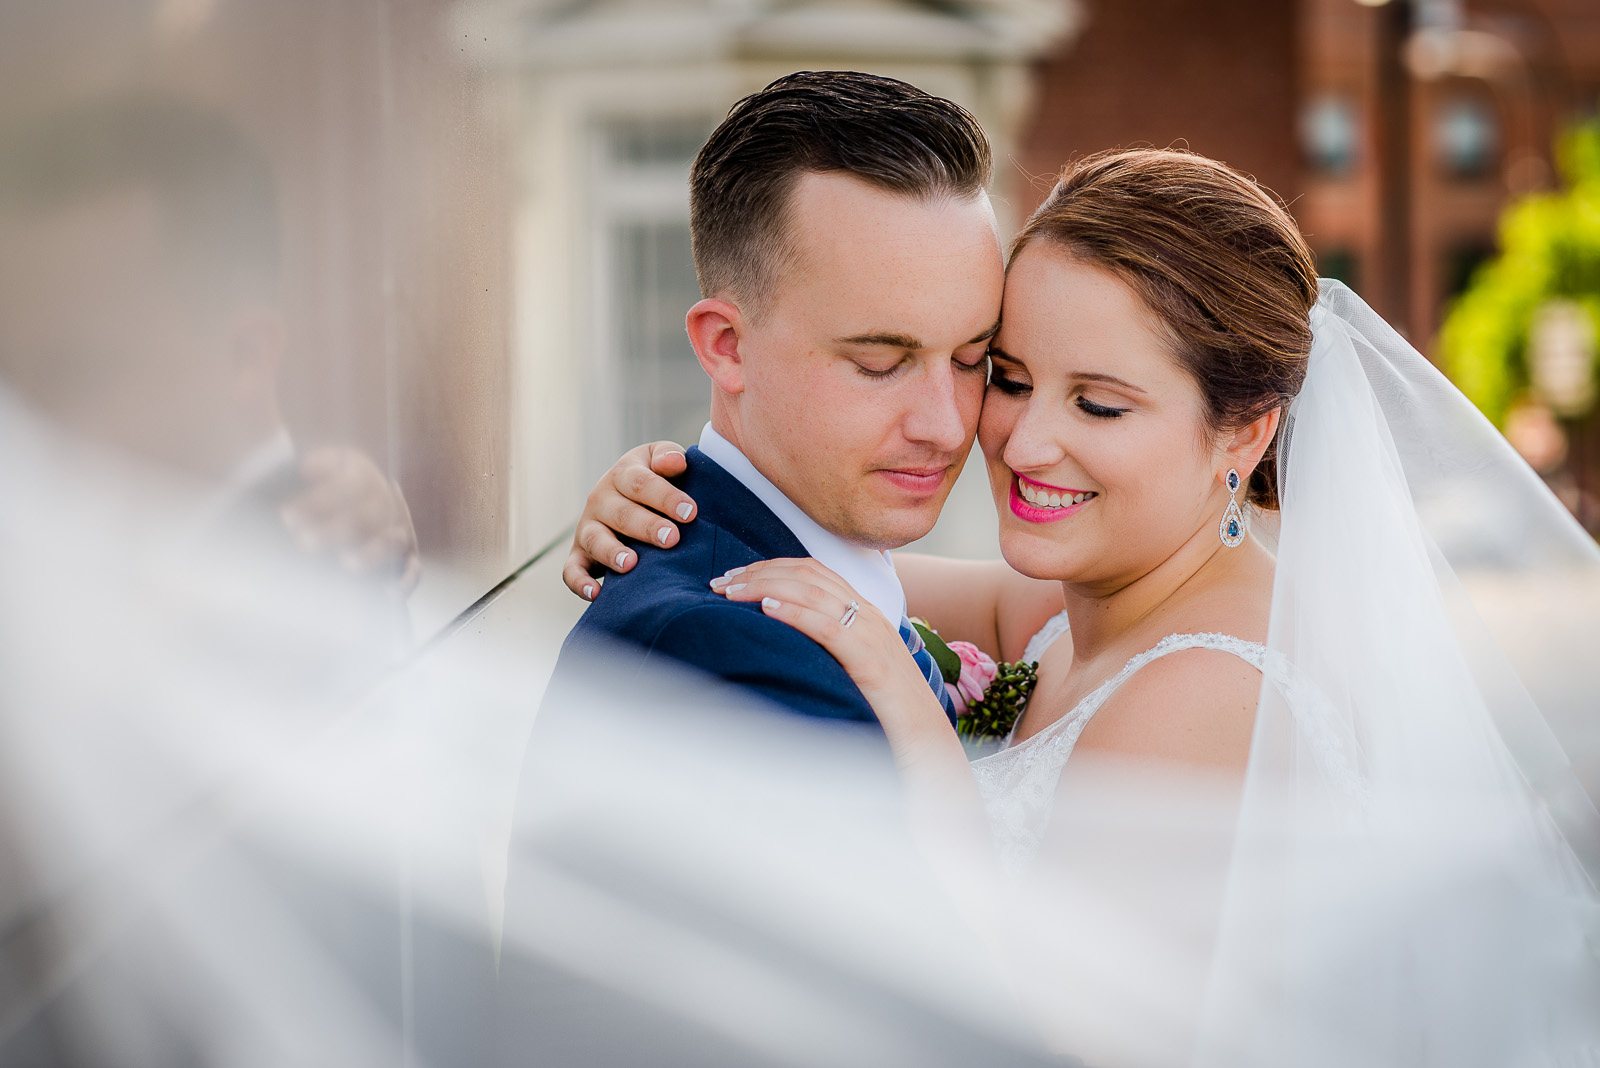 Eric_and_Christy_Photography_Blog_2018_Portraits-7